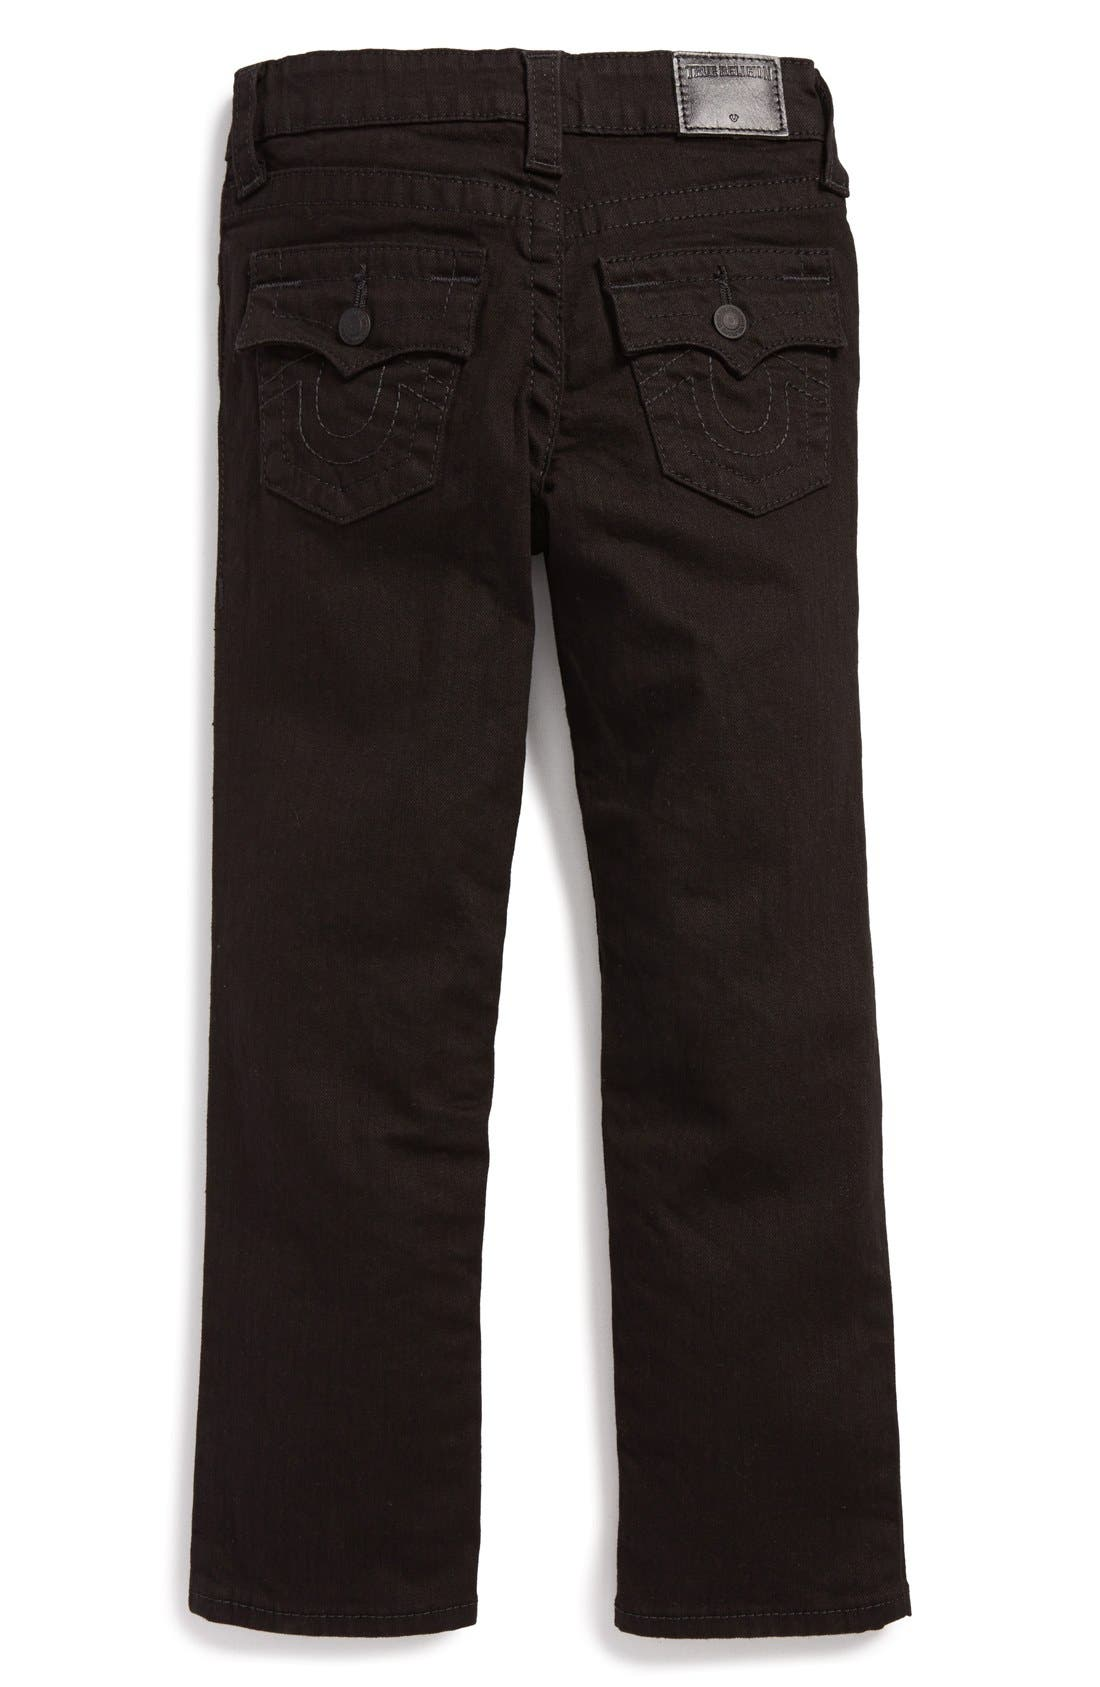 'Geno' Relaxed Slim Fit Jeans,                             Alternate thumbnail 2, color,                             Superfly Wash